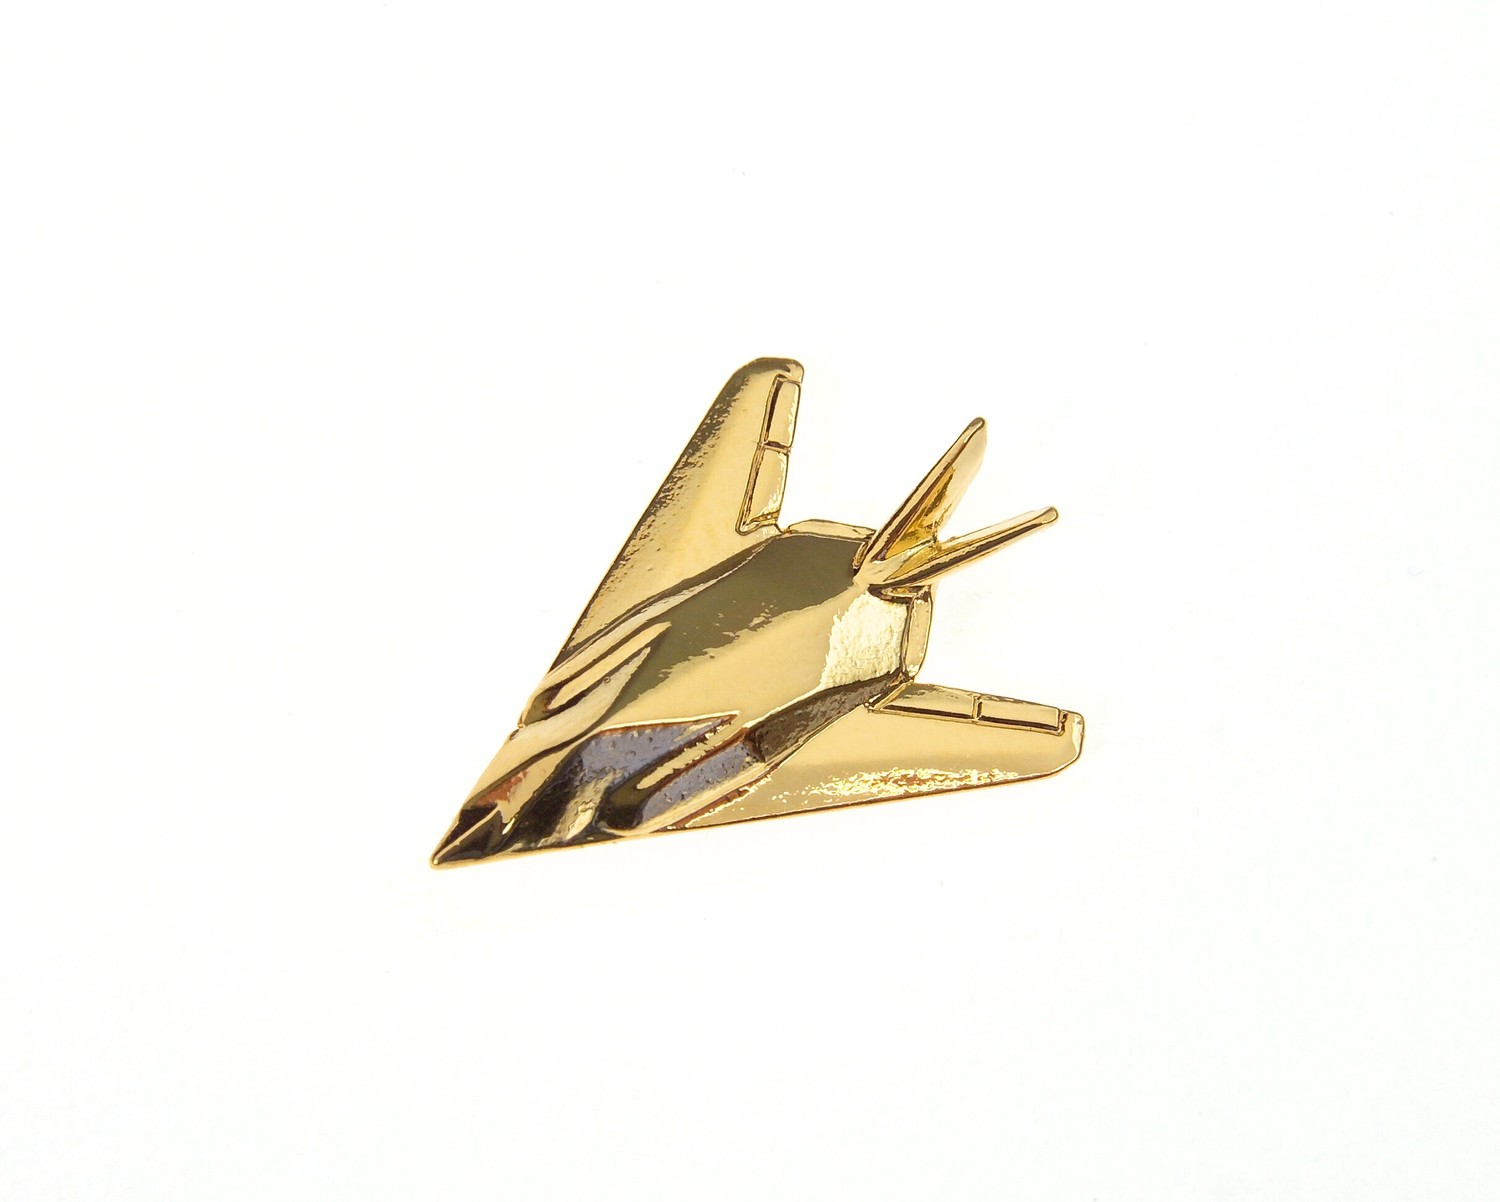 F117 Night Hawk 'Stealth Fighter' Gold Plated Tie / Lapel Pin